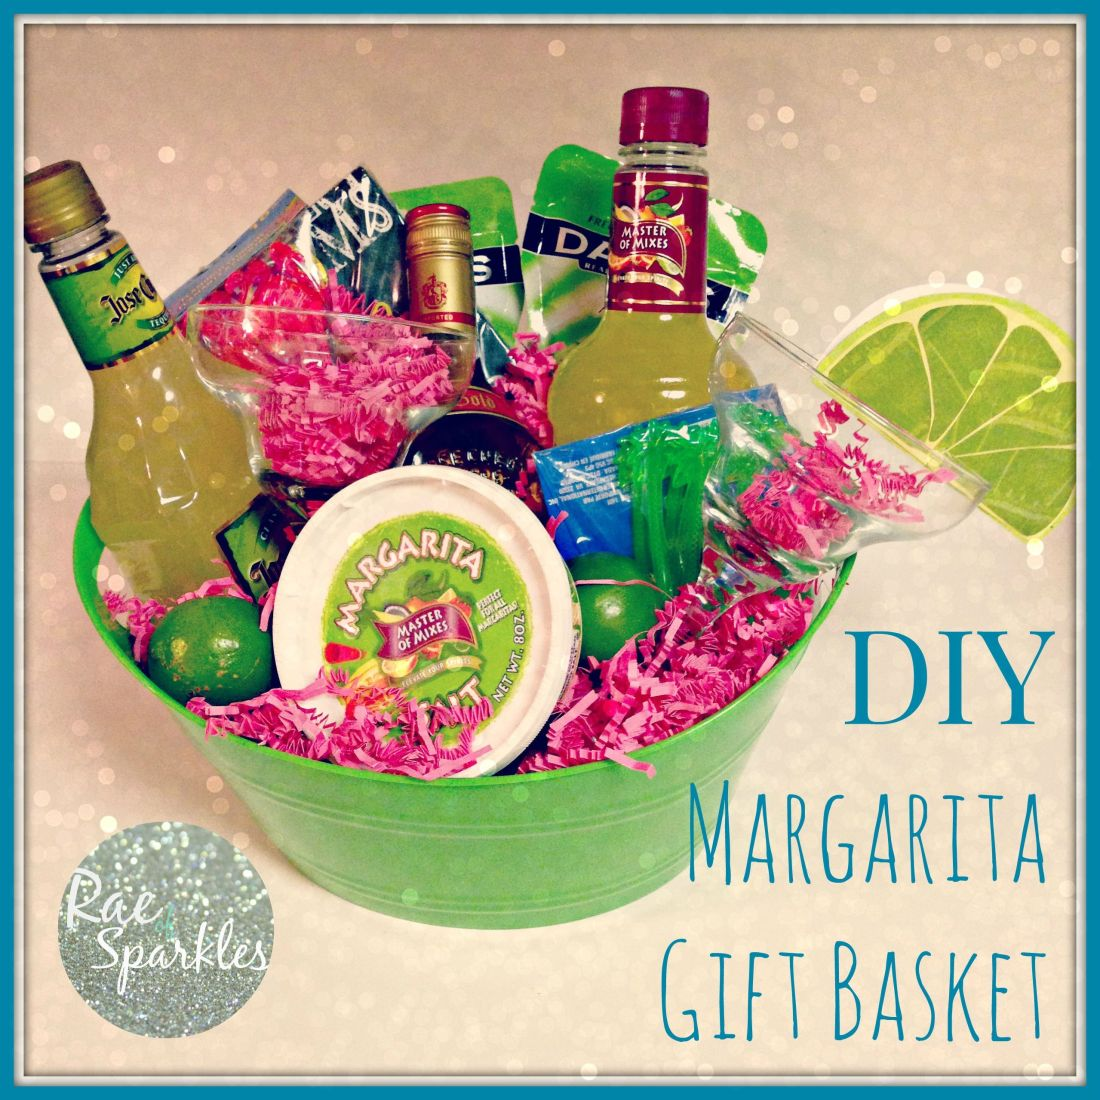 Diy margarita gift basket perfect gift for a friend who